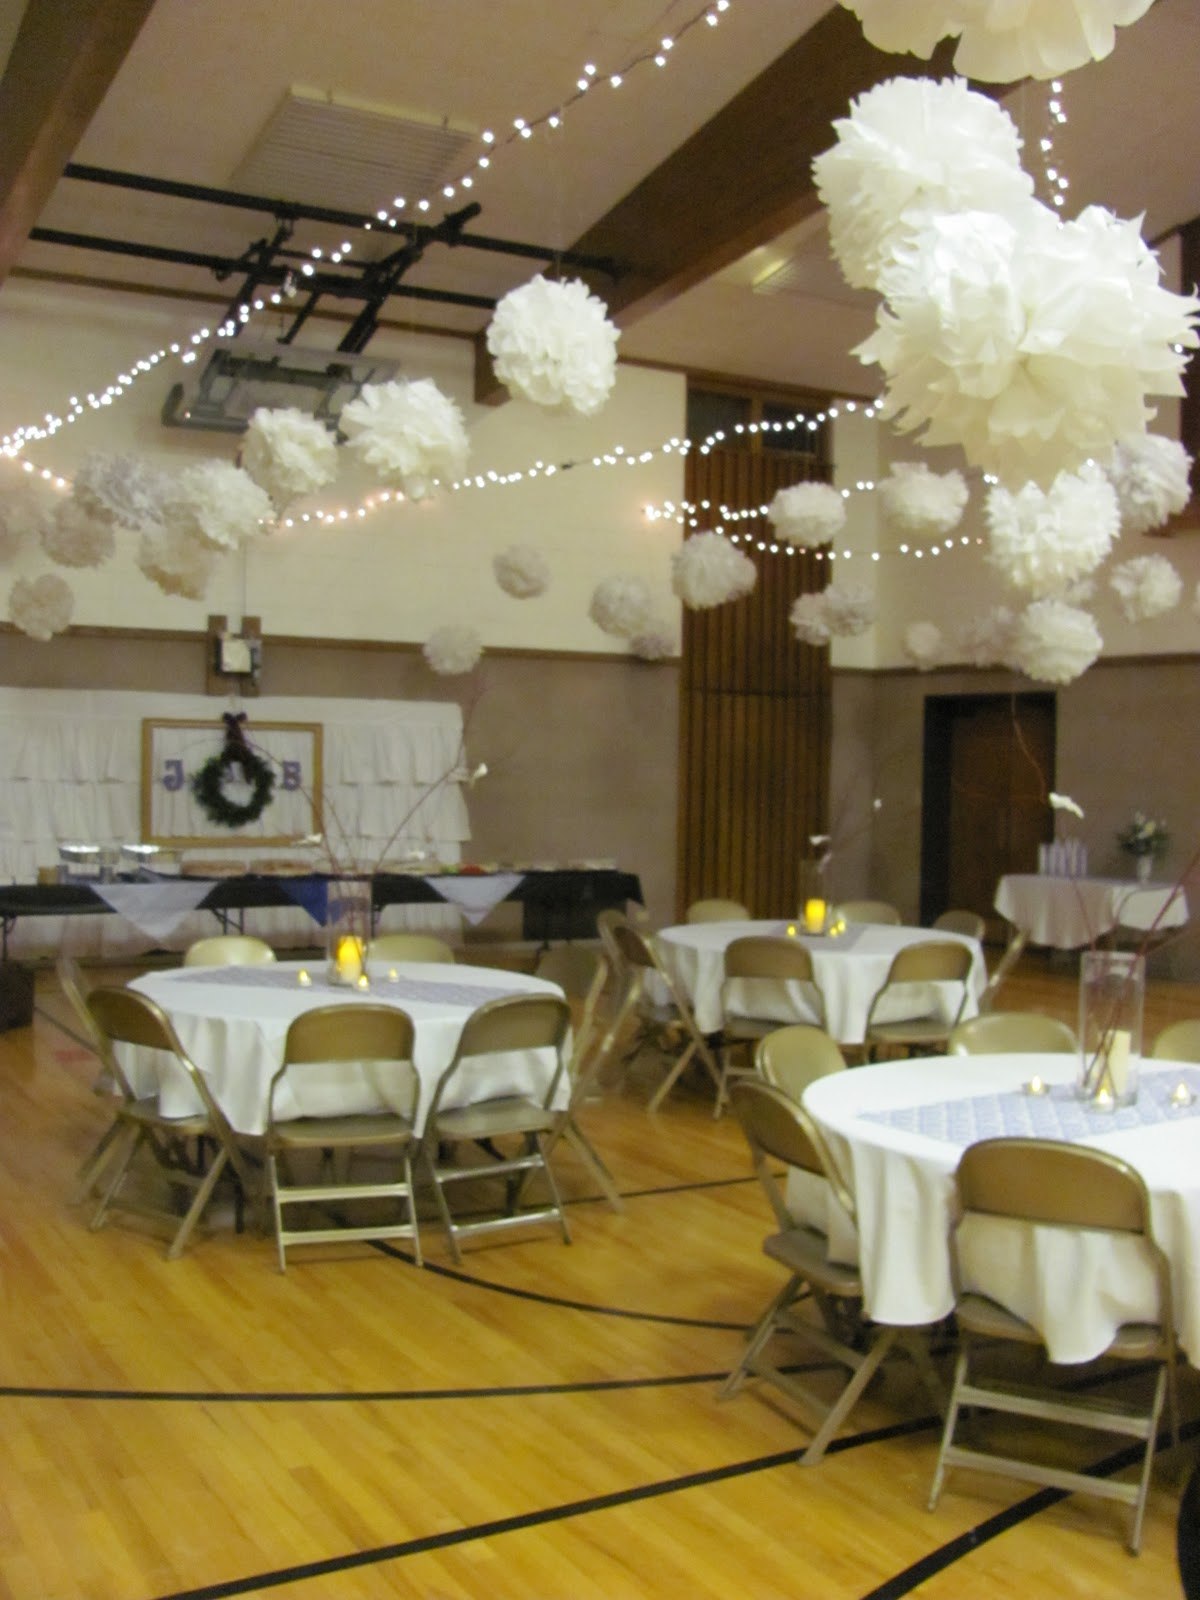 & Header: Wedding Open House Decorating